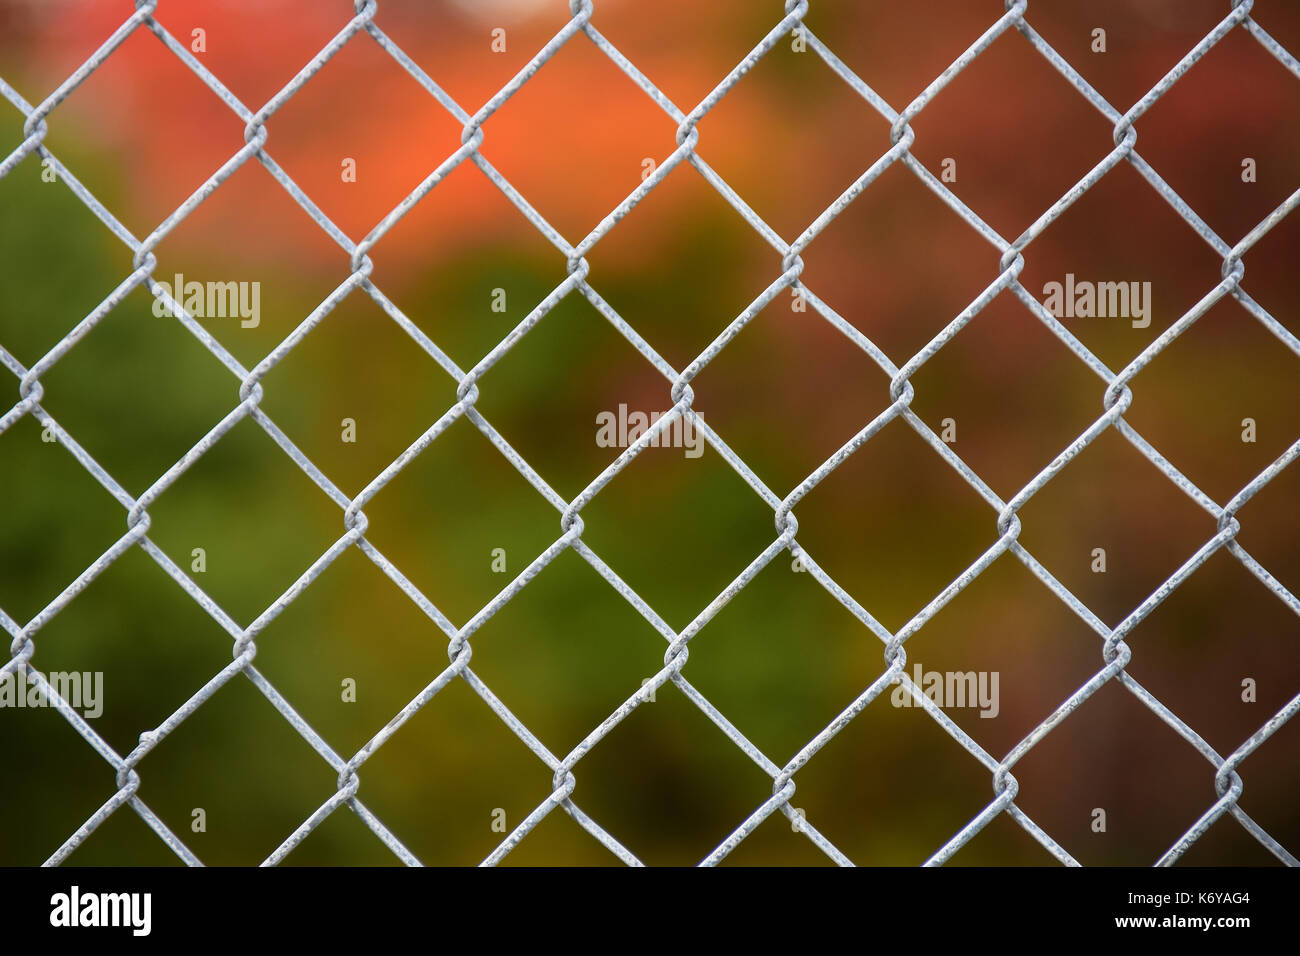 Soft focus autumn foliage colors behind a chain link fence indicating confinement or exclusion from the other side in Speculator, New York NY - Stock Image